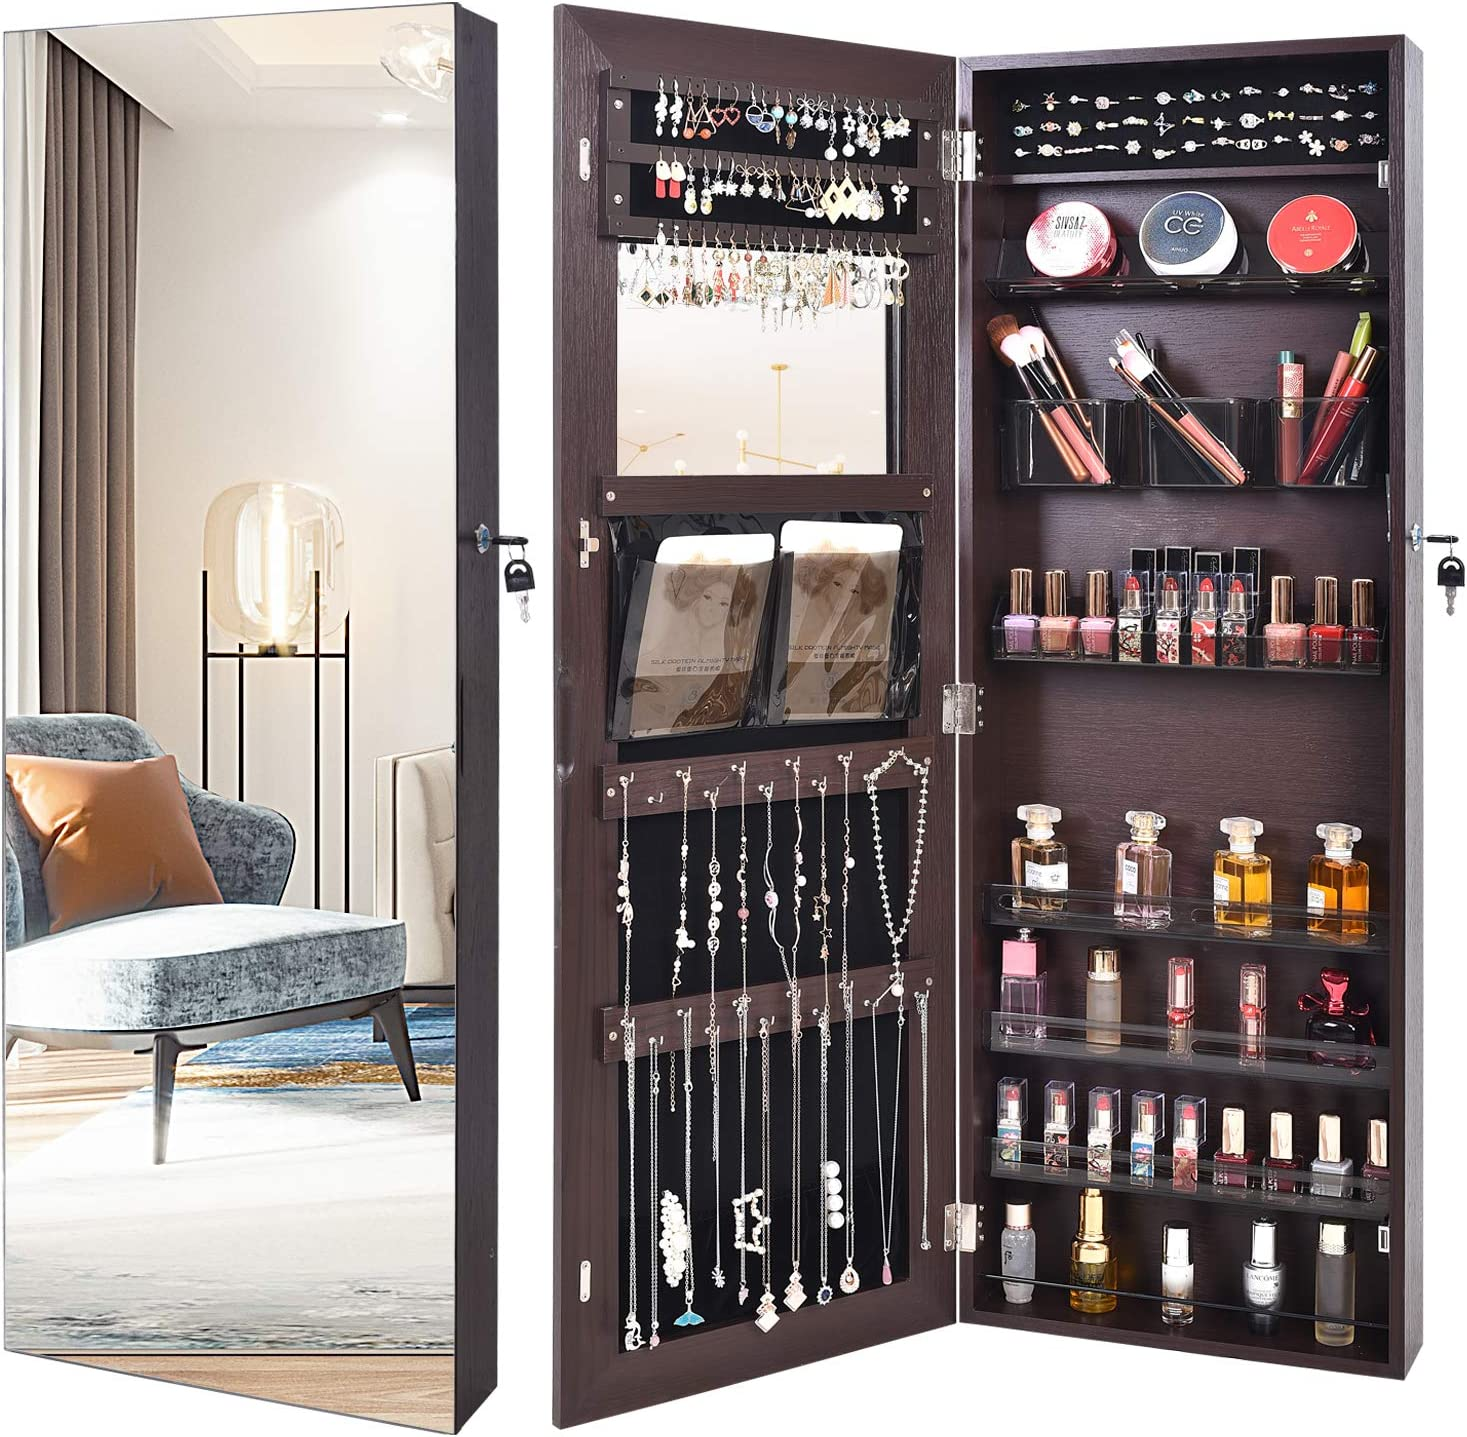 Outdoor Doit Framless Lockable Full mirror jewelry organizer Fashion Transparent box wall mounte/Borderless jewelry cabinet jewelry armoire with mirror/full length mirror hanging mirror 6181 (brown)